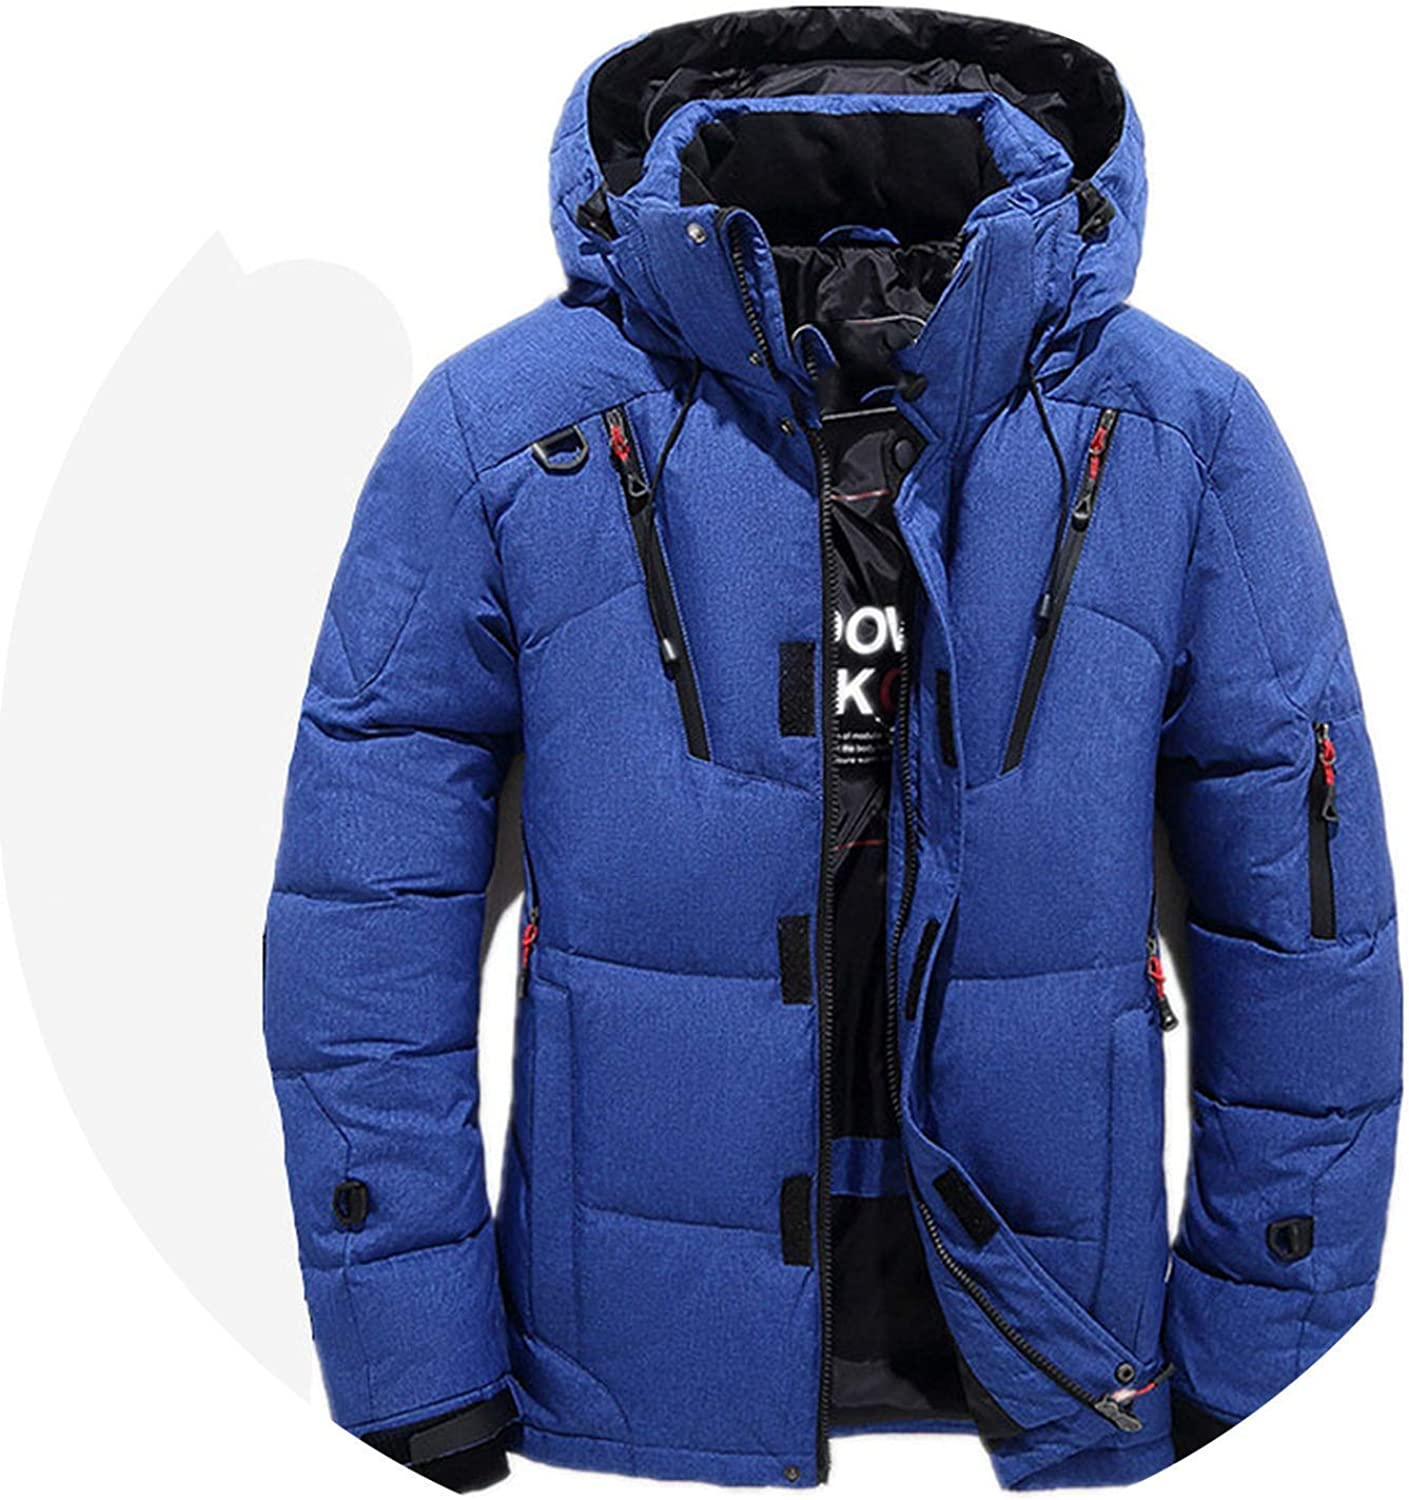 Welcometoo 90% White Duck Thick Down Jacket Snow Parkas Male Warm Clothing Winter Down Jacket Outerwear